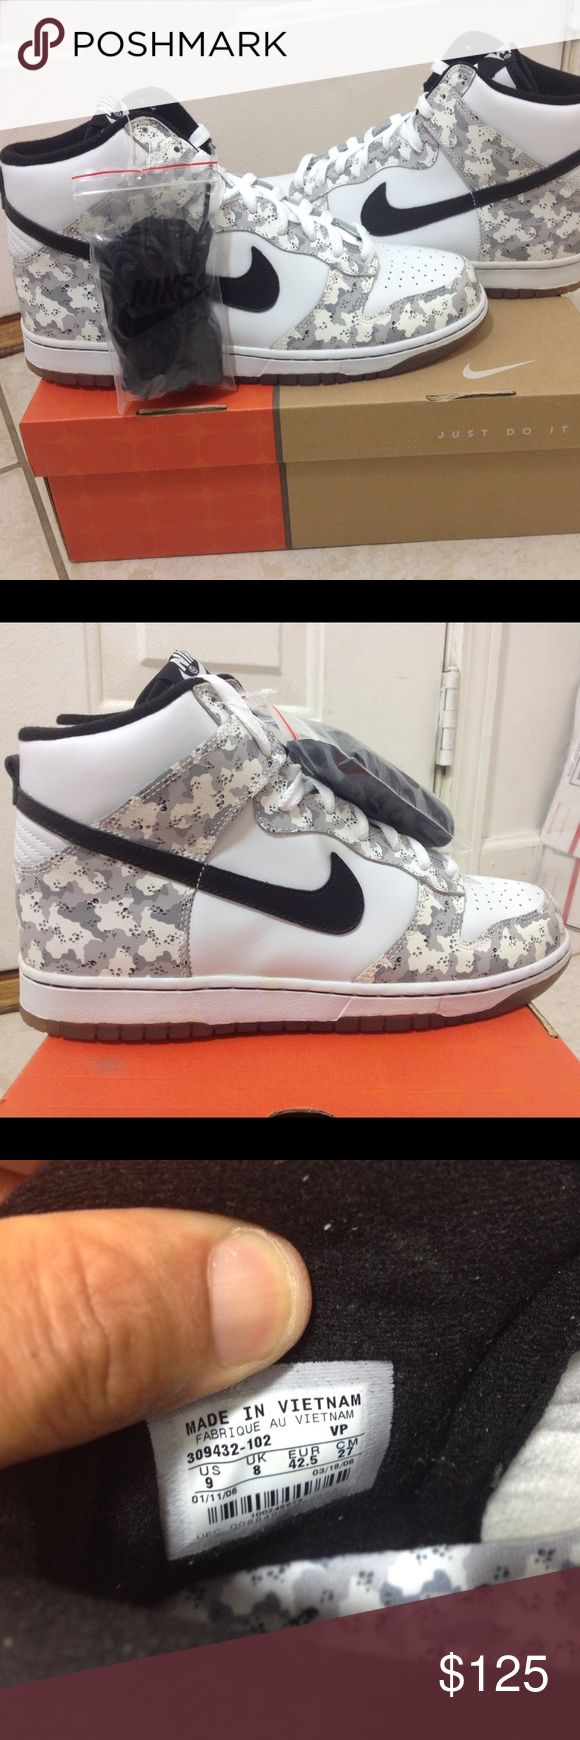 RARE Nike Dunk Hi Arctic Snow Camo 2006 SOLD‼️ Priced to GO QUICK! ULTRA RARE 2006 DEADSTOCK Nike Dunk High Arctic Snow Camouflage size 9. A must have for any sneaker collector. Very hard to find in this size and condition! DON'T SLEEP ON THIS AND MISS OUT ADDING TO YOUR COLLECTION. Comes with original box and extra black laces. In Excellent shape for a shoe that's over 7 years old. 100% AUTHENTIC. only 3 pair of these on eBay, 2 in another country (both pair are over $200 and mine which is…